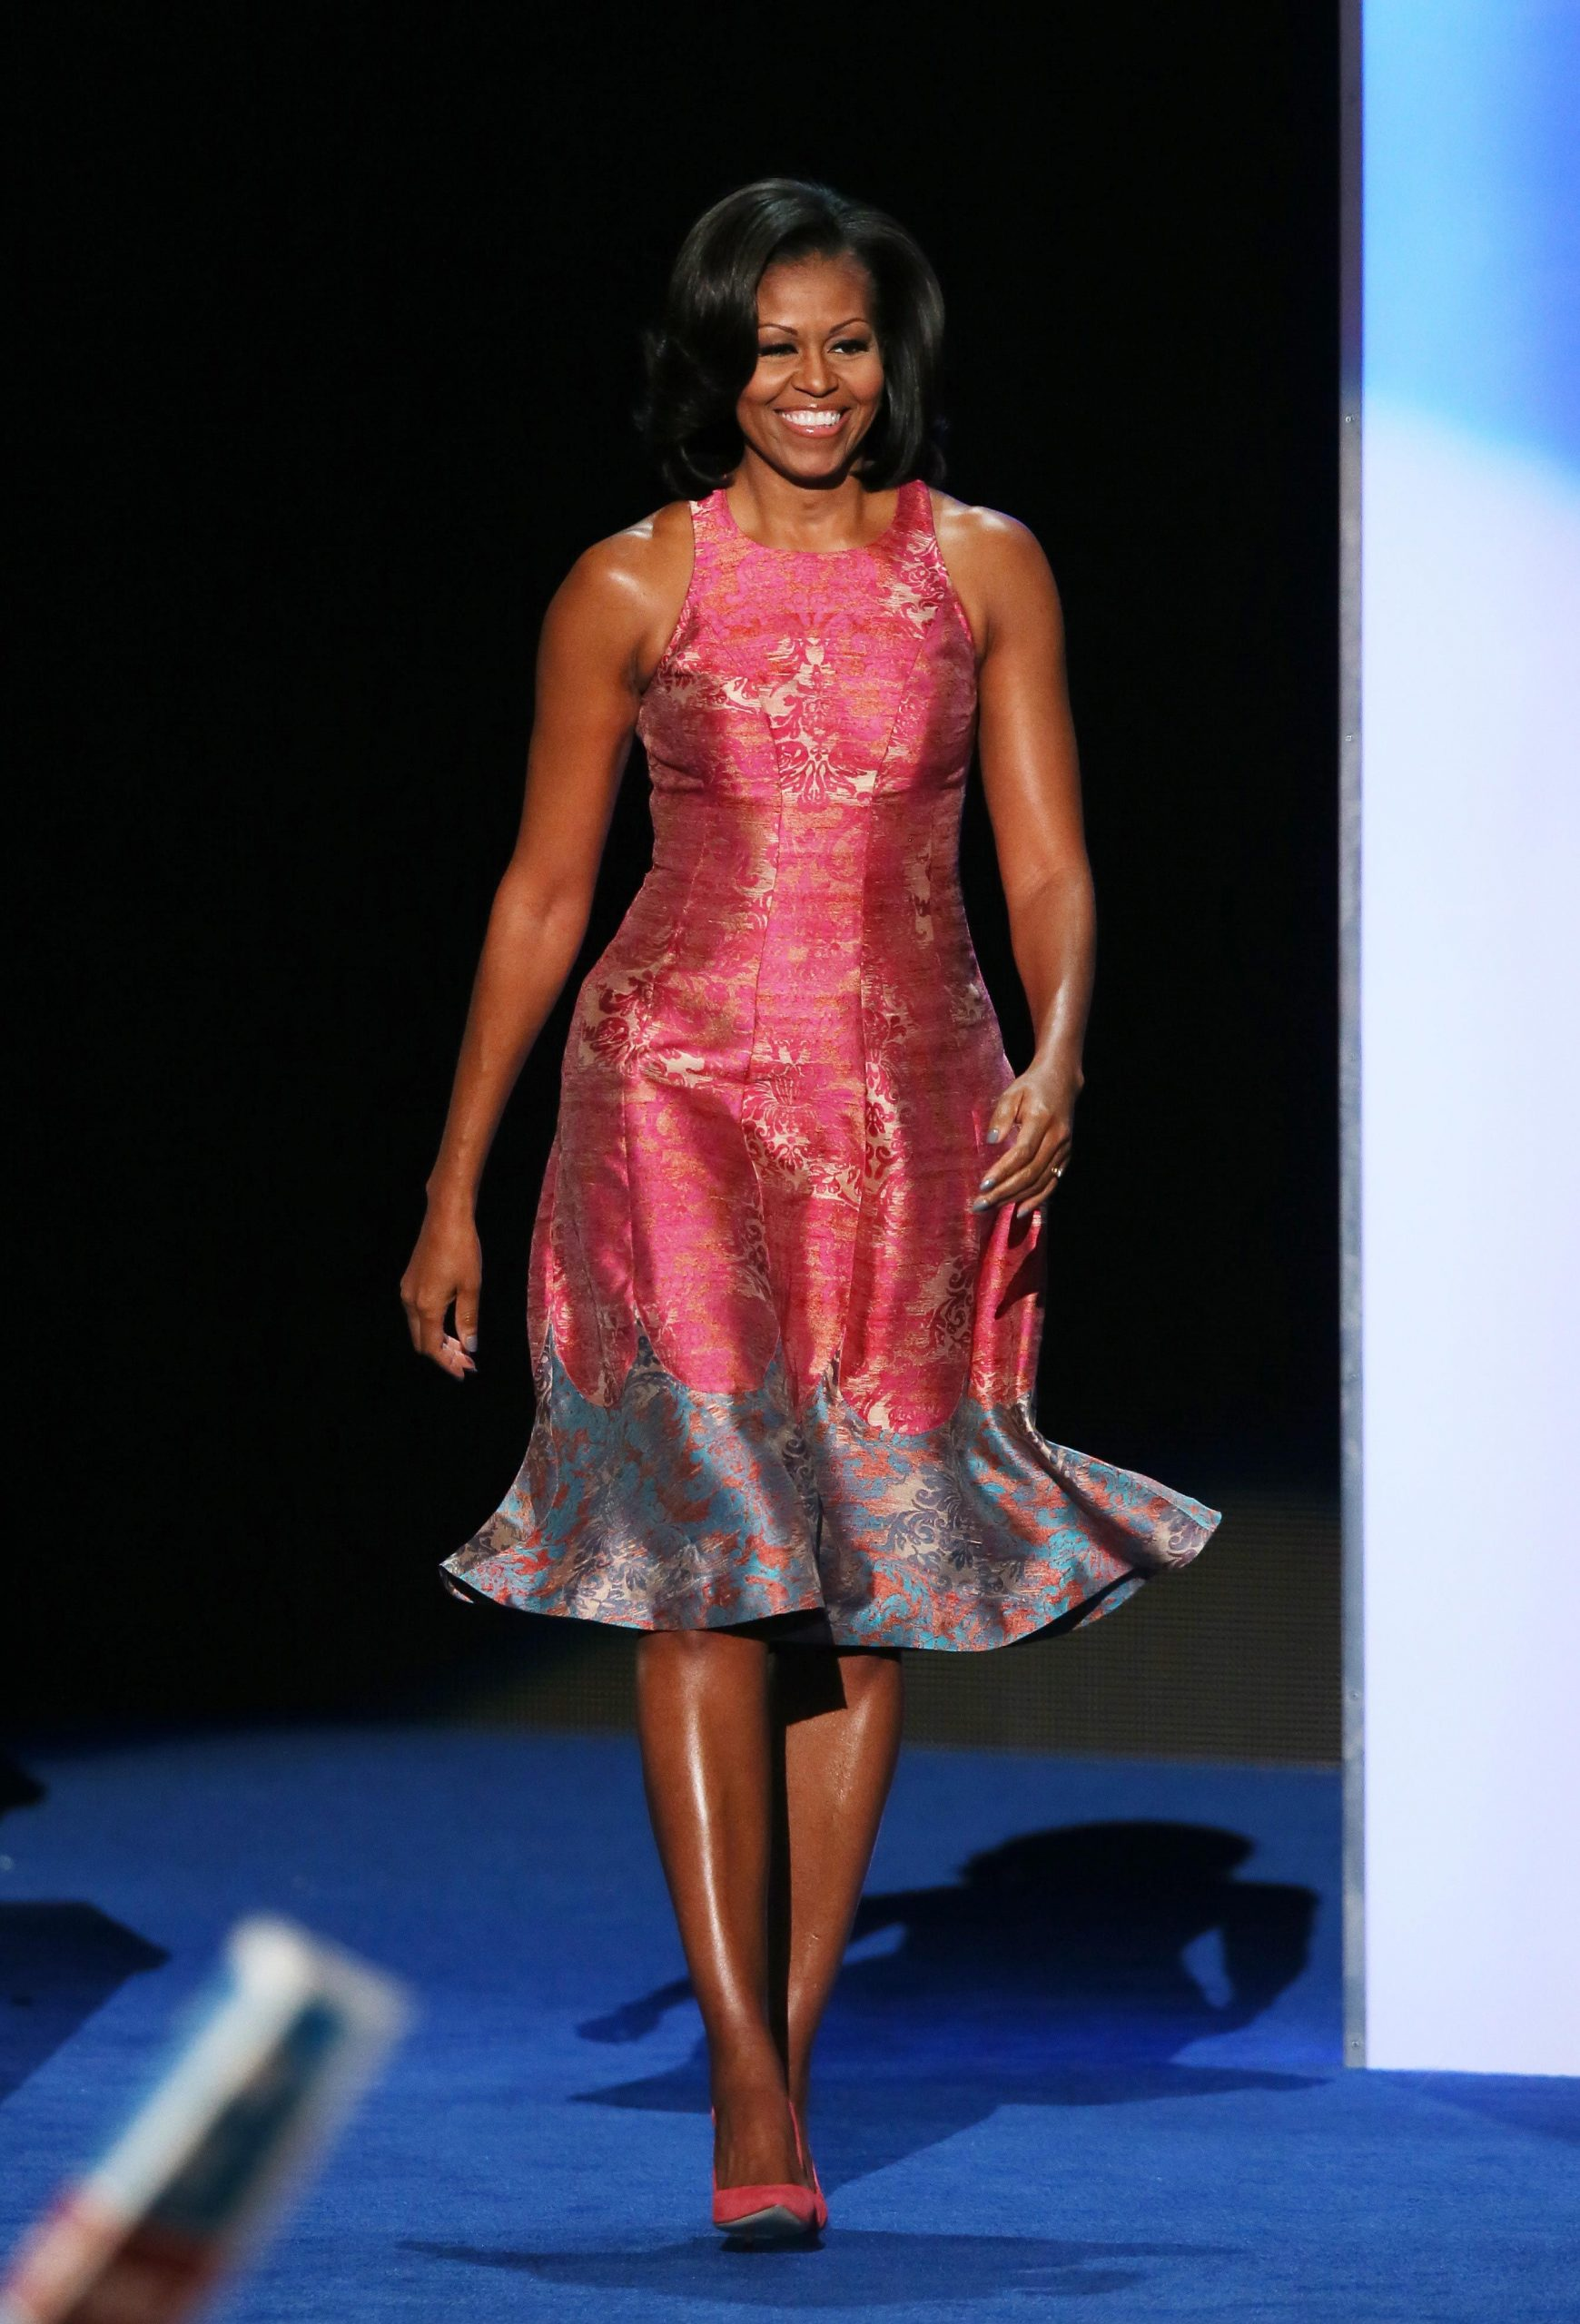 michelle-obama-urges-americans-to-vote-for-joe-biden-in-new-campaign-video